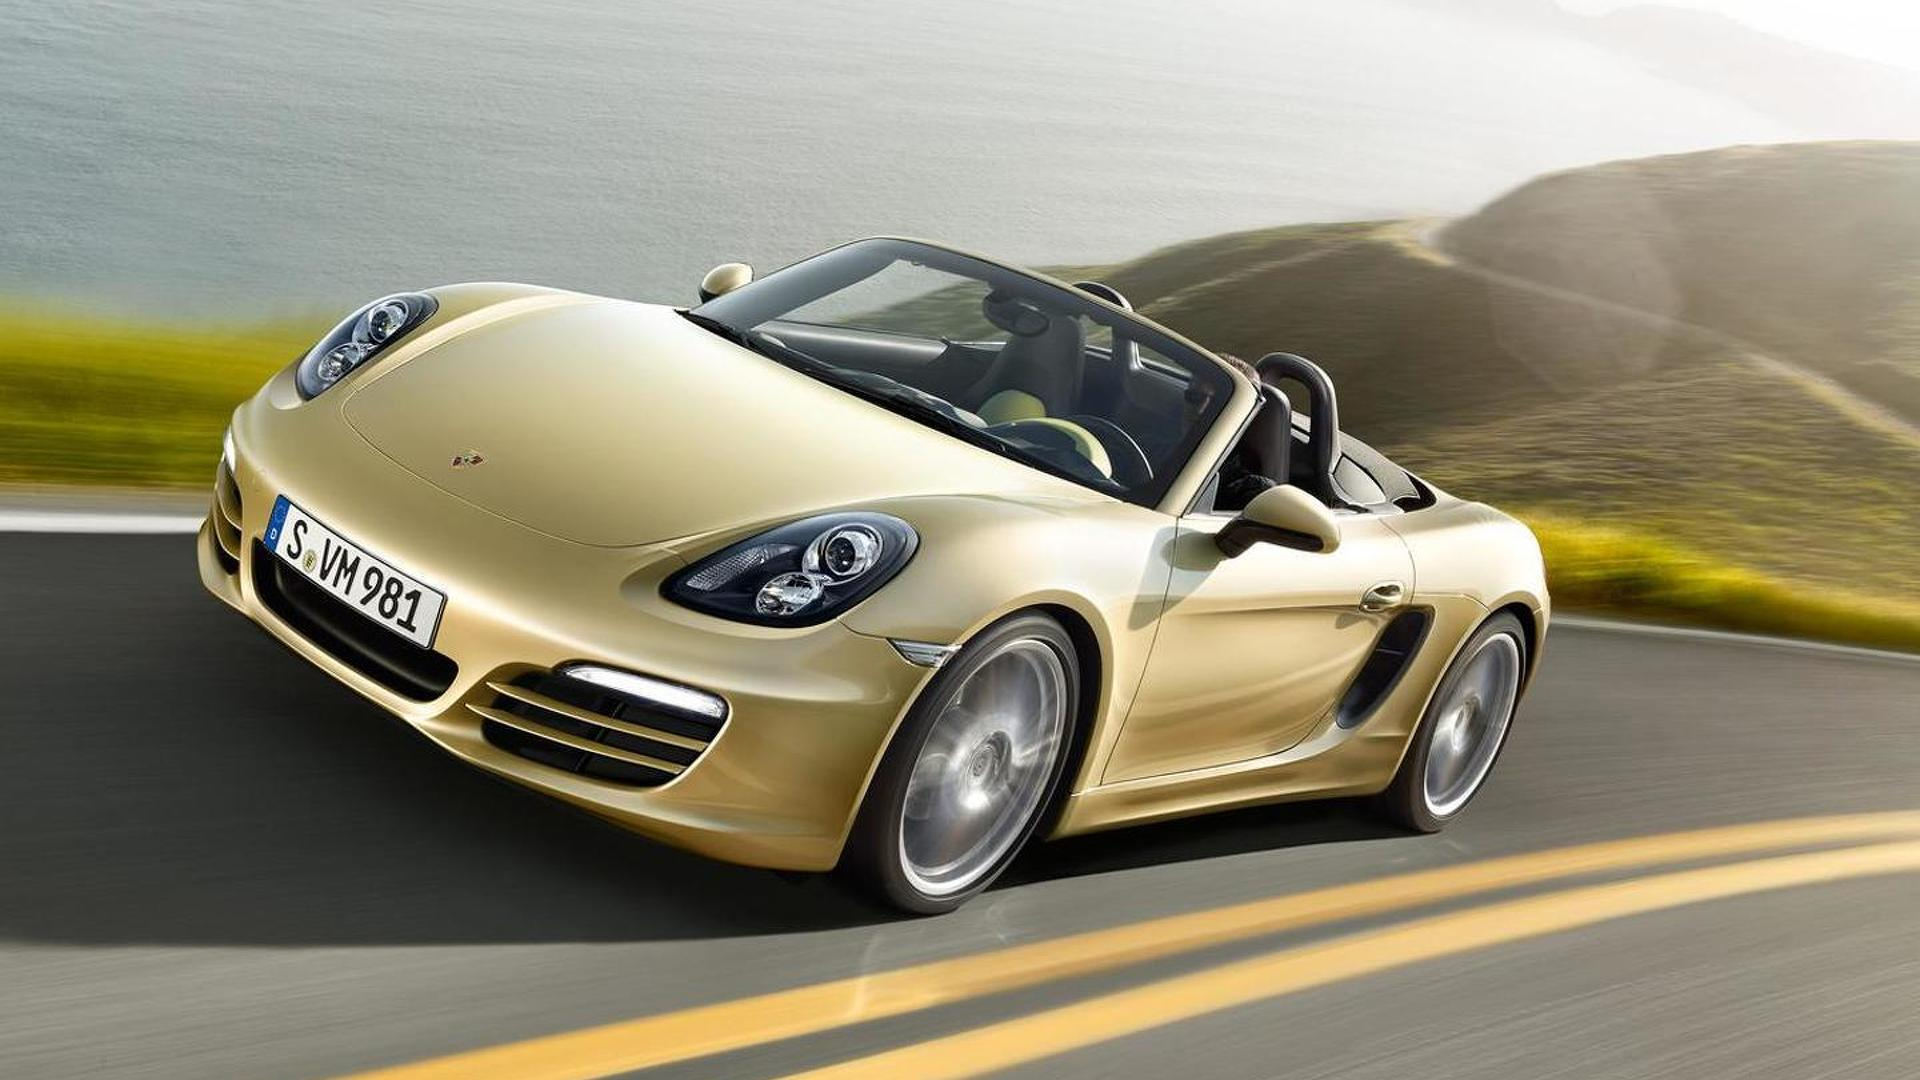 Porsche 718 not happening, Boxster to remain entry-level model